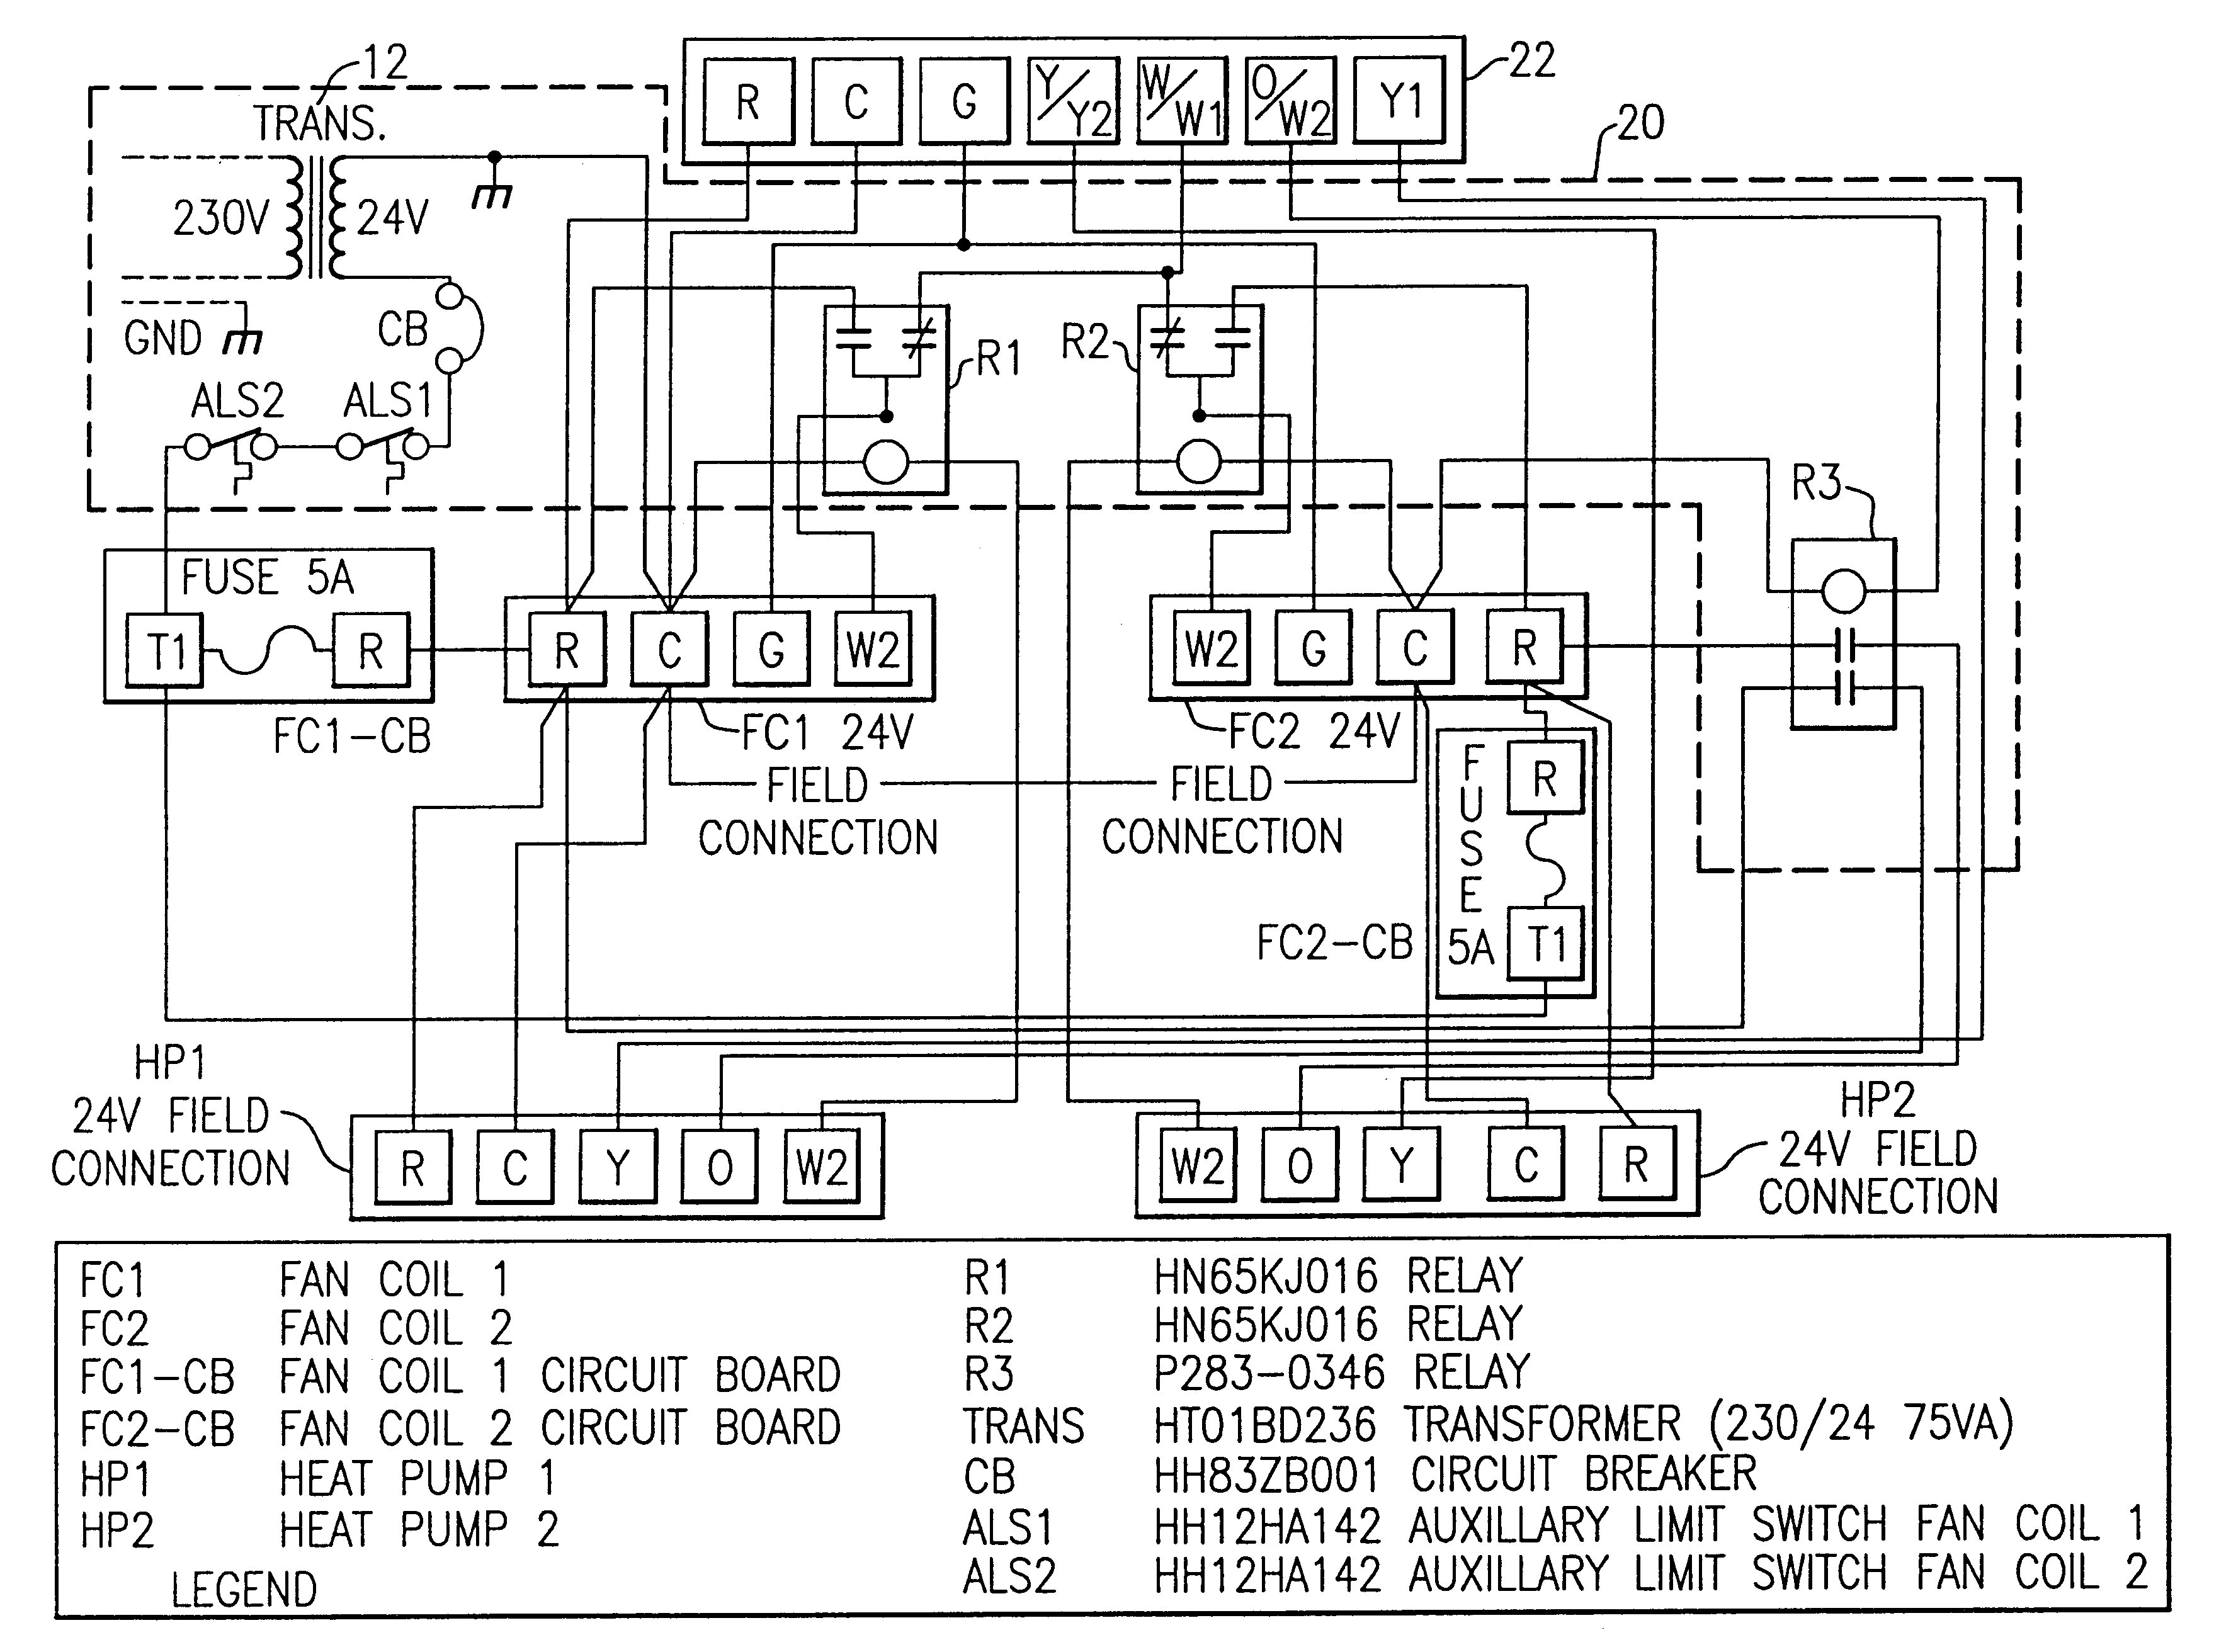 Amazing York 96 2 Stage Furnace Wiring Diagram s Electrical